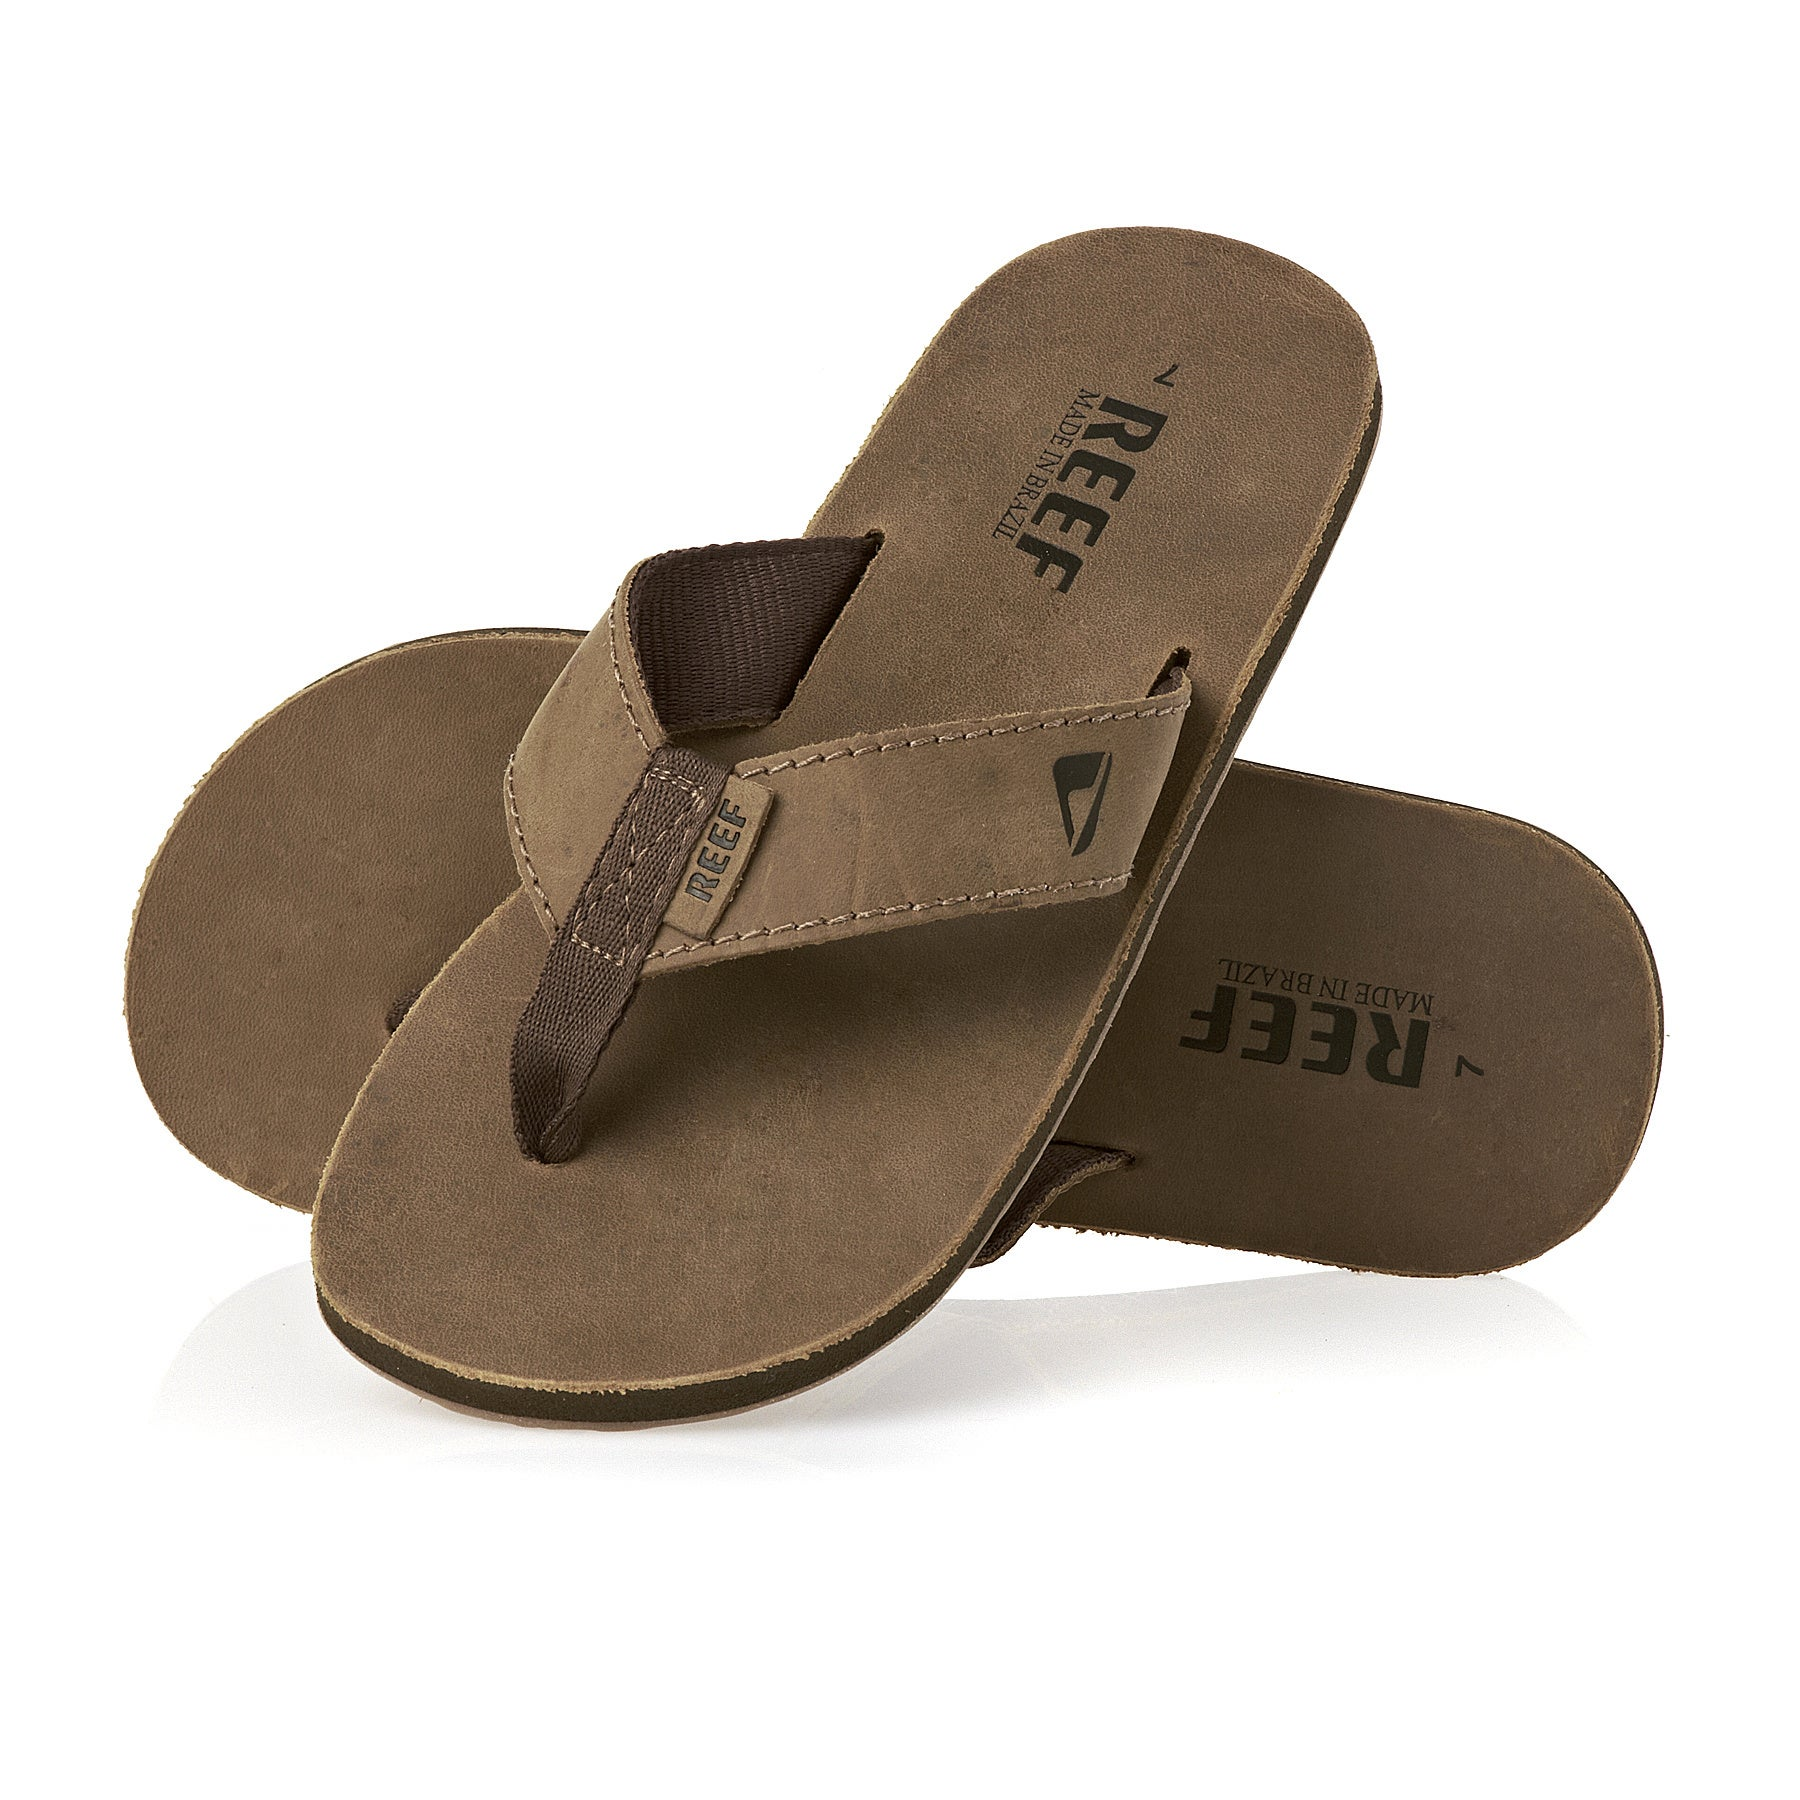 Sandalias Reef Leather Smoothy - Bronze Brown